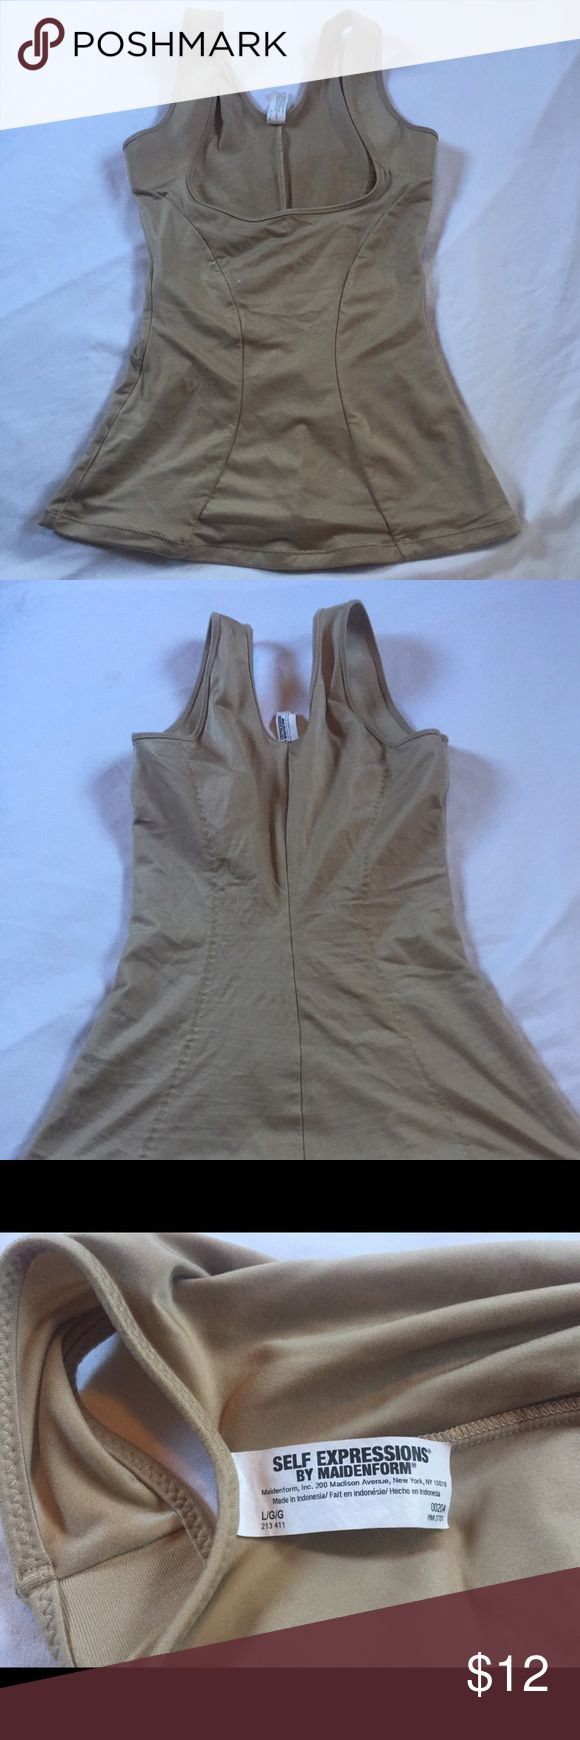 Maidenform Wear your own bra camisole shaper Large Very good used condition Self Expressions by Maidenform Size large camisole shaper Maidenform Intimates & Sleepwear Shapewear